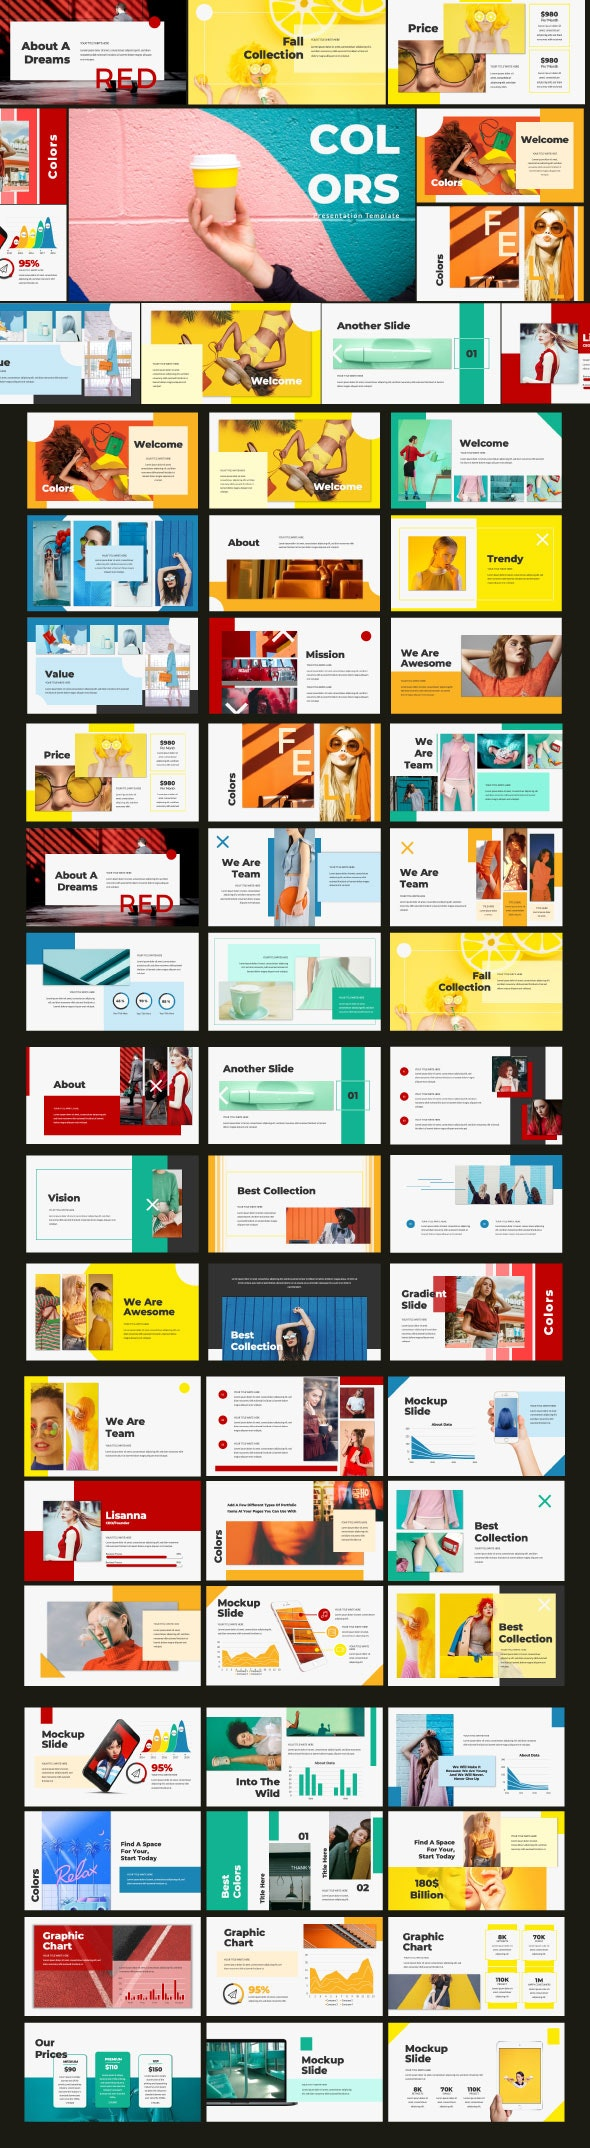 Colors Creative Powerpoint Template - Creative PowerPoint Templates